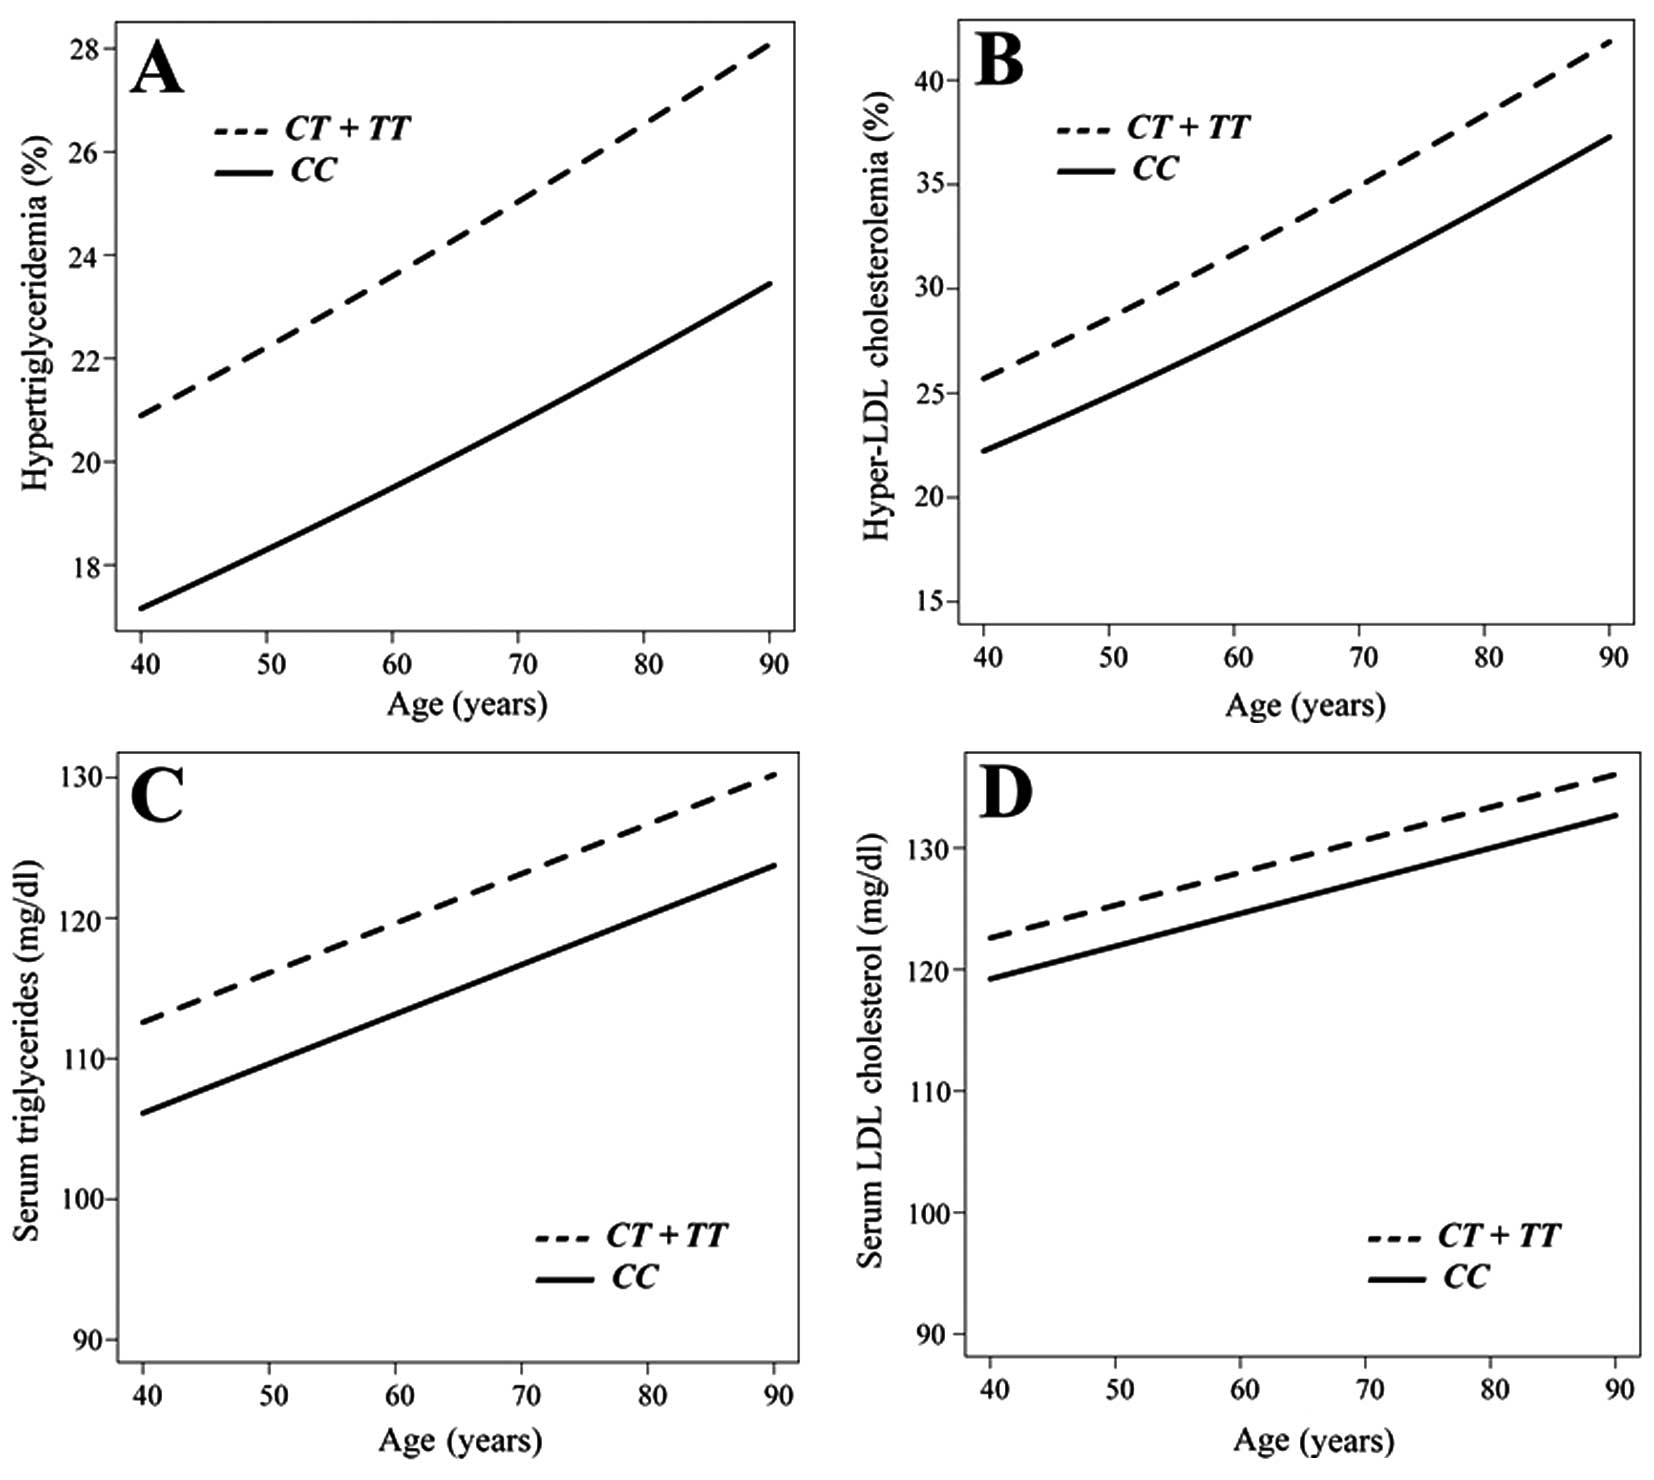 Association of genetic variants with dyslipidemia and